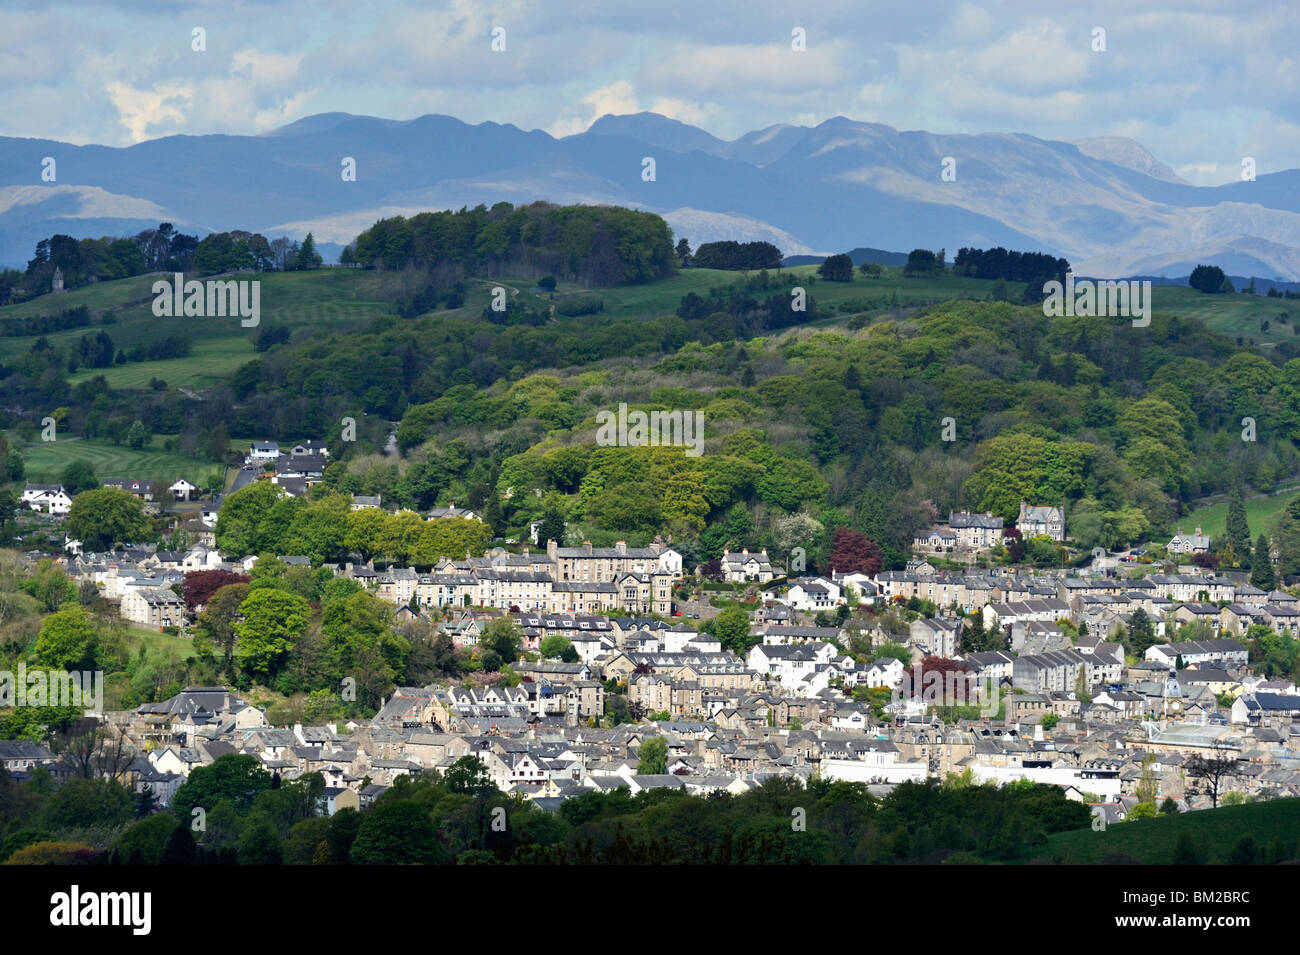 kendal-and-the-lake-district-fells-kendal-cumbria-england-united-kingdom-BM2BRC.jpg